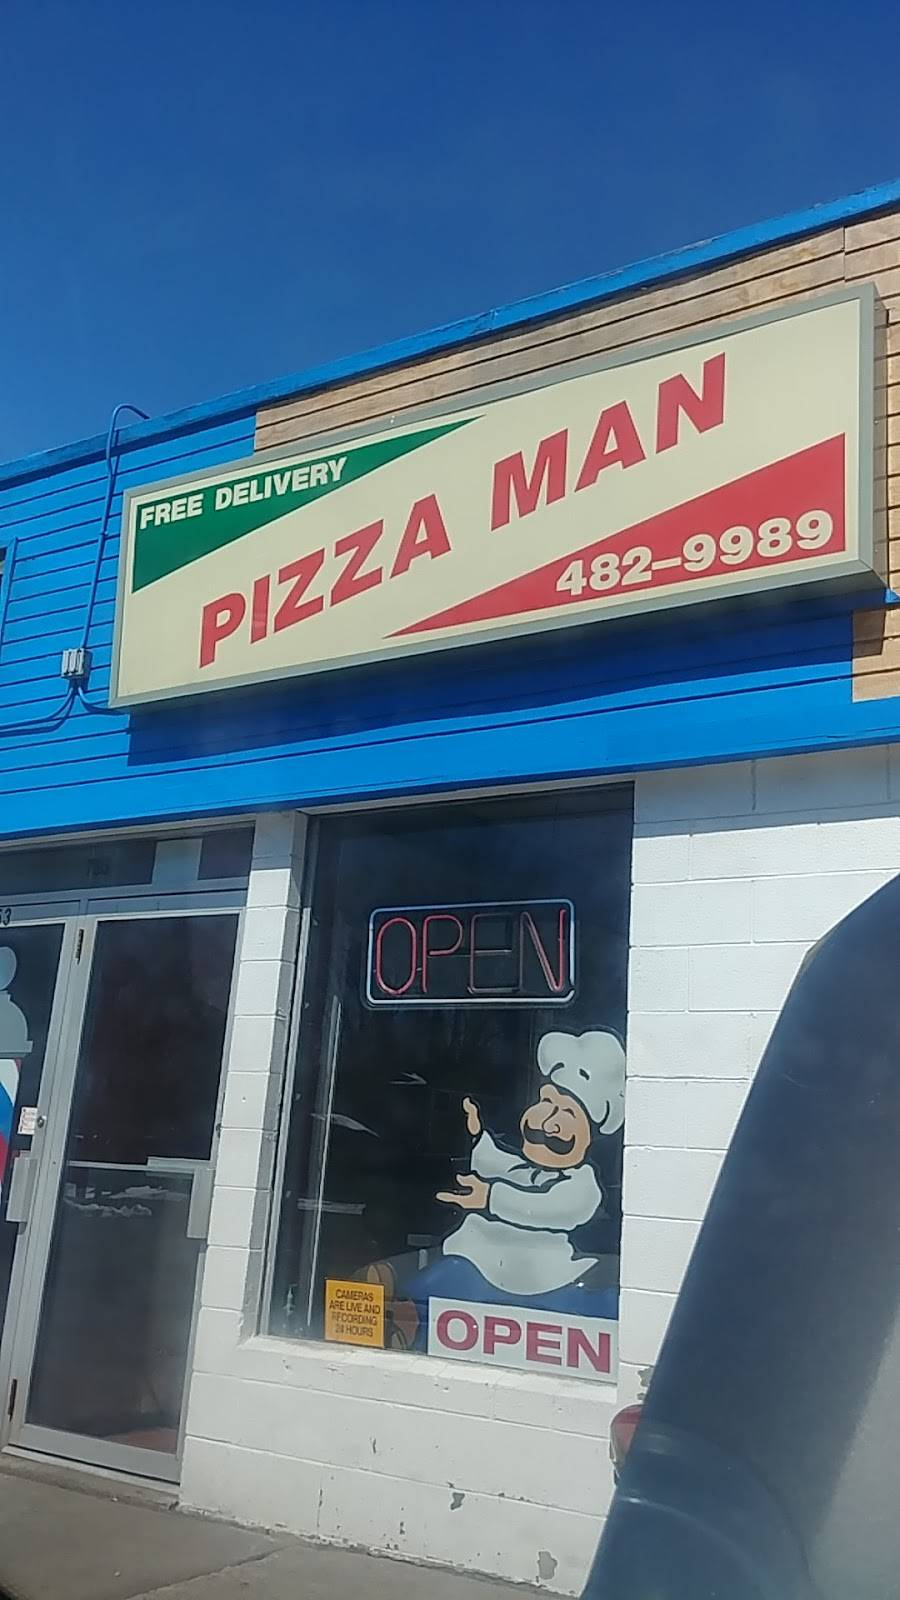 PIZZA MAN VADNAIS HEIGHTS LITTLE CANADA - meal delivery  | Photo 2 of 10 | Address: 753 County Rd D E, St Paul, MN 55117, USA | Phone: (651) 482-9989